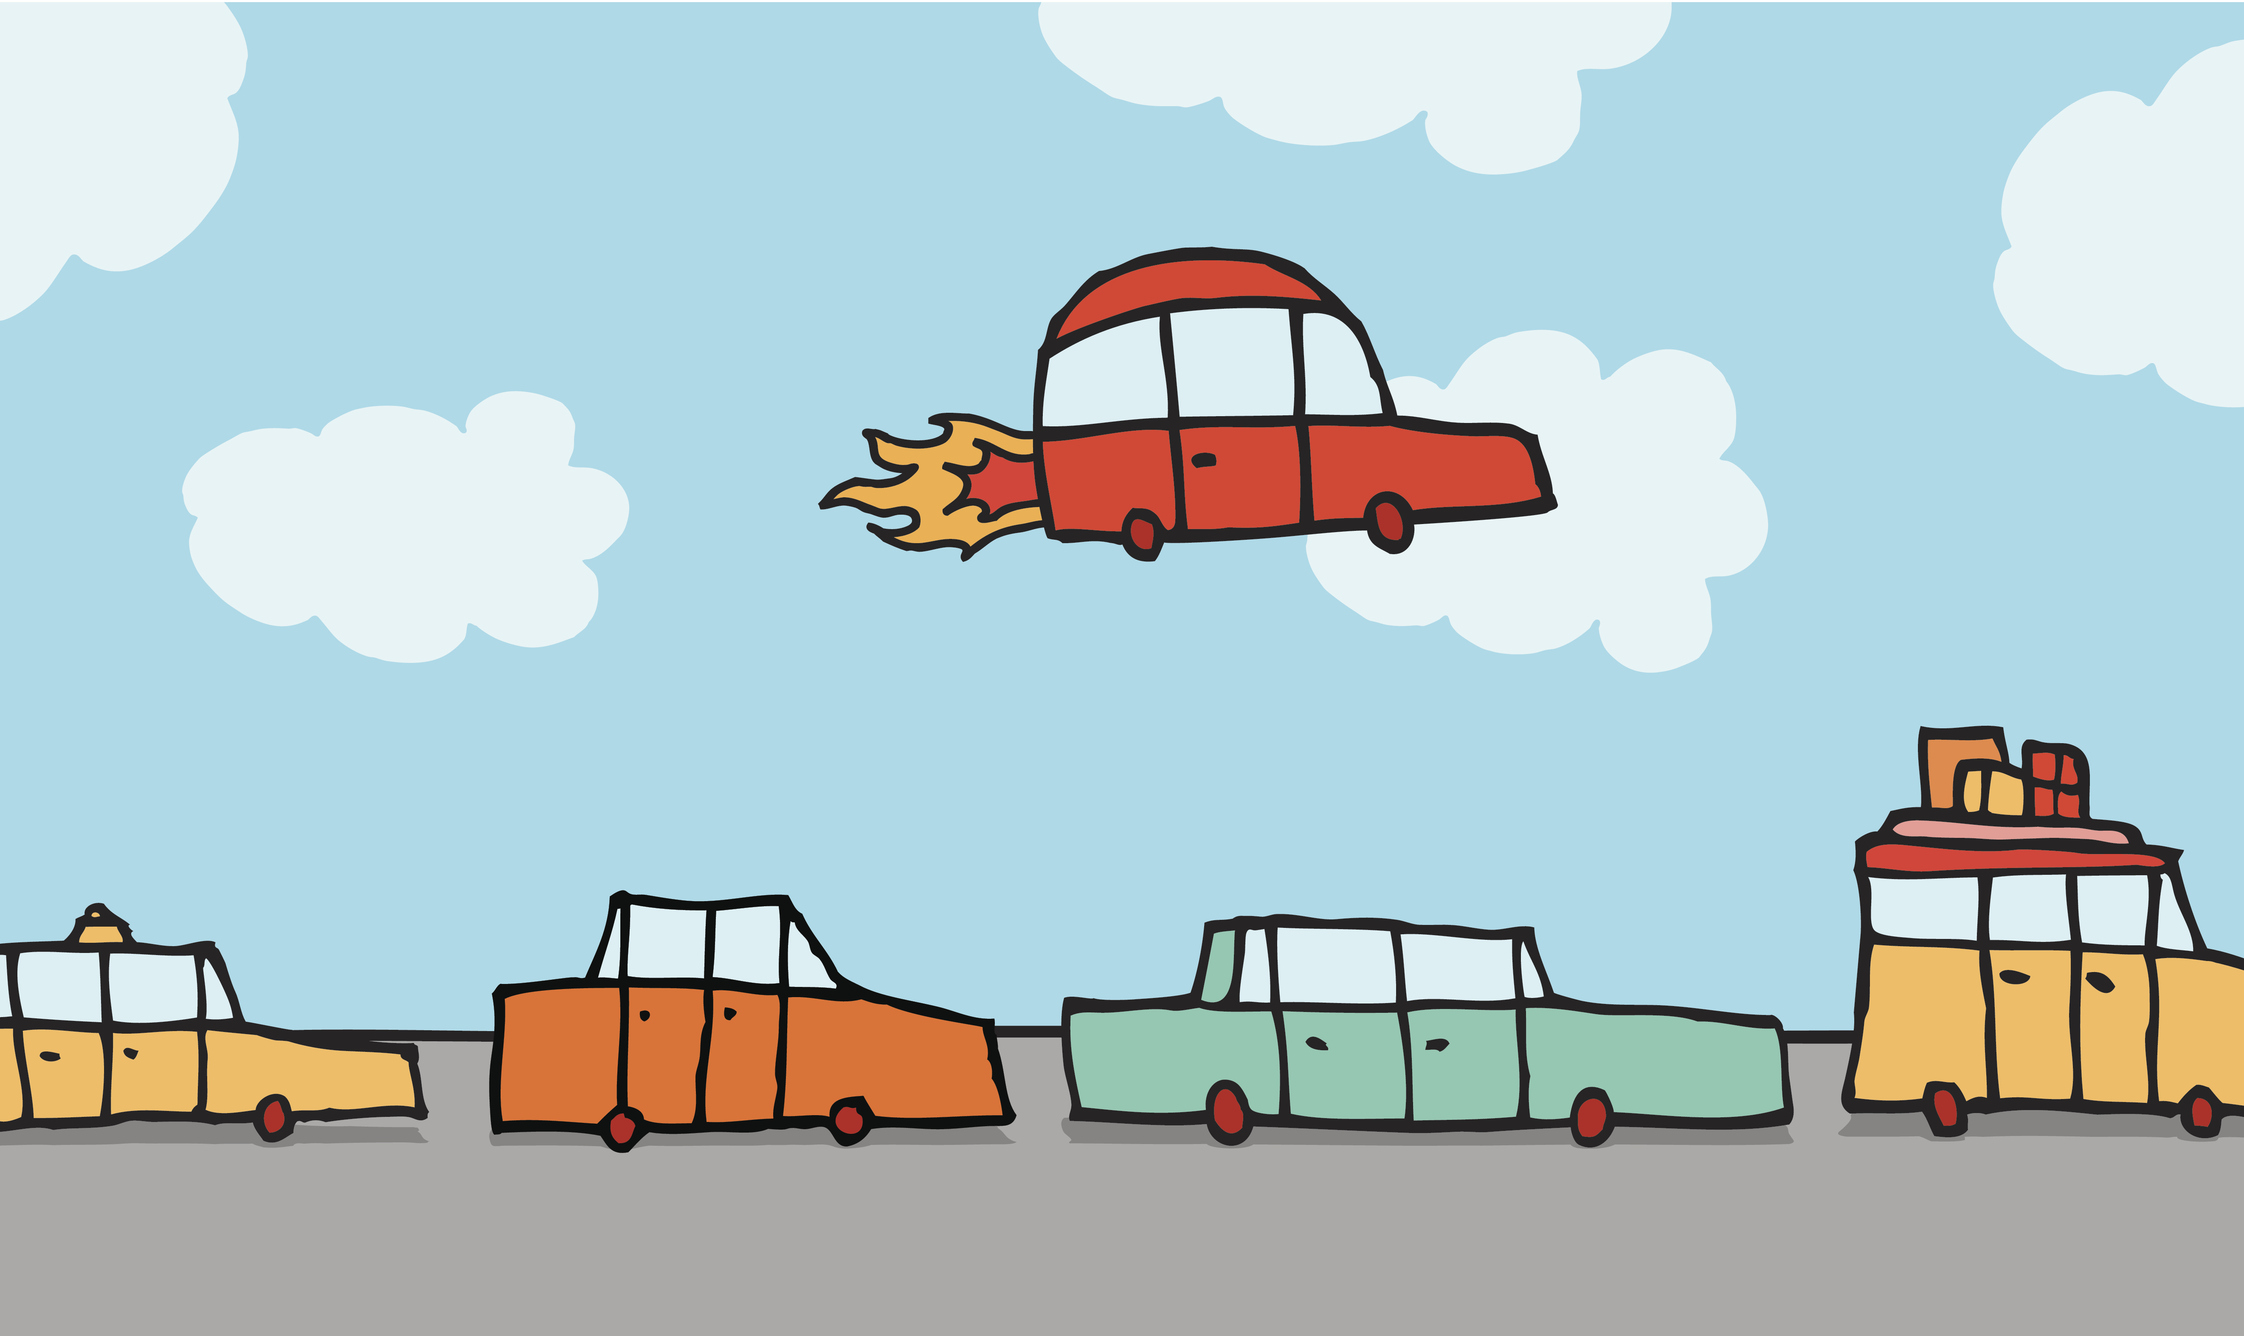 Are flying cars the future of transportation or an inflated expectation?